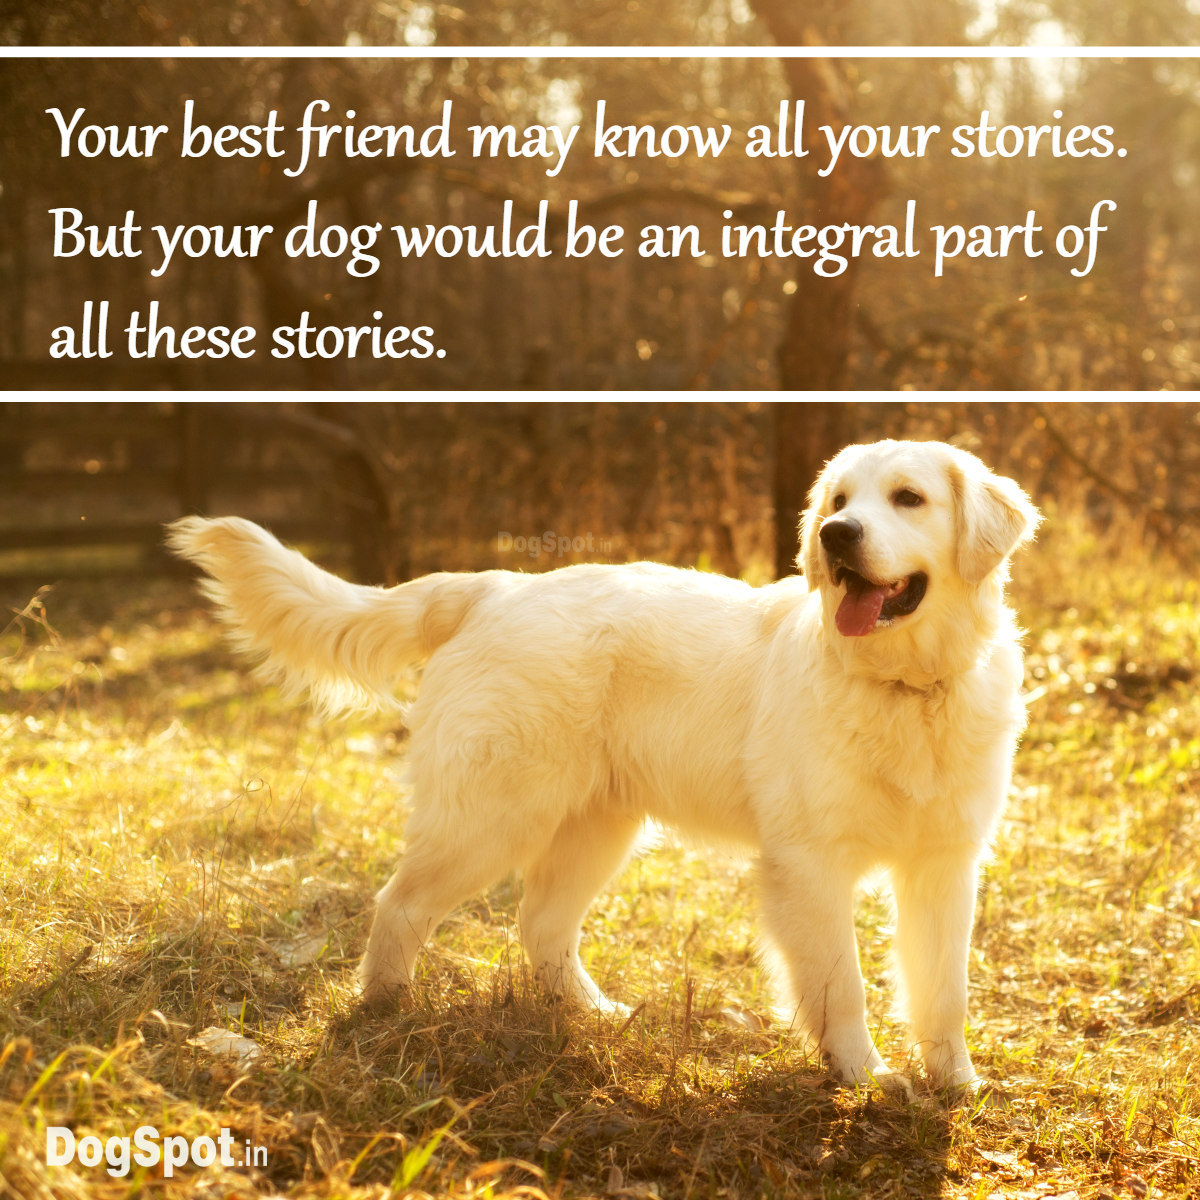 Dog Quote: Your best friend may know all your stories. But your